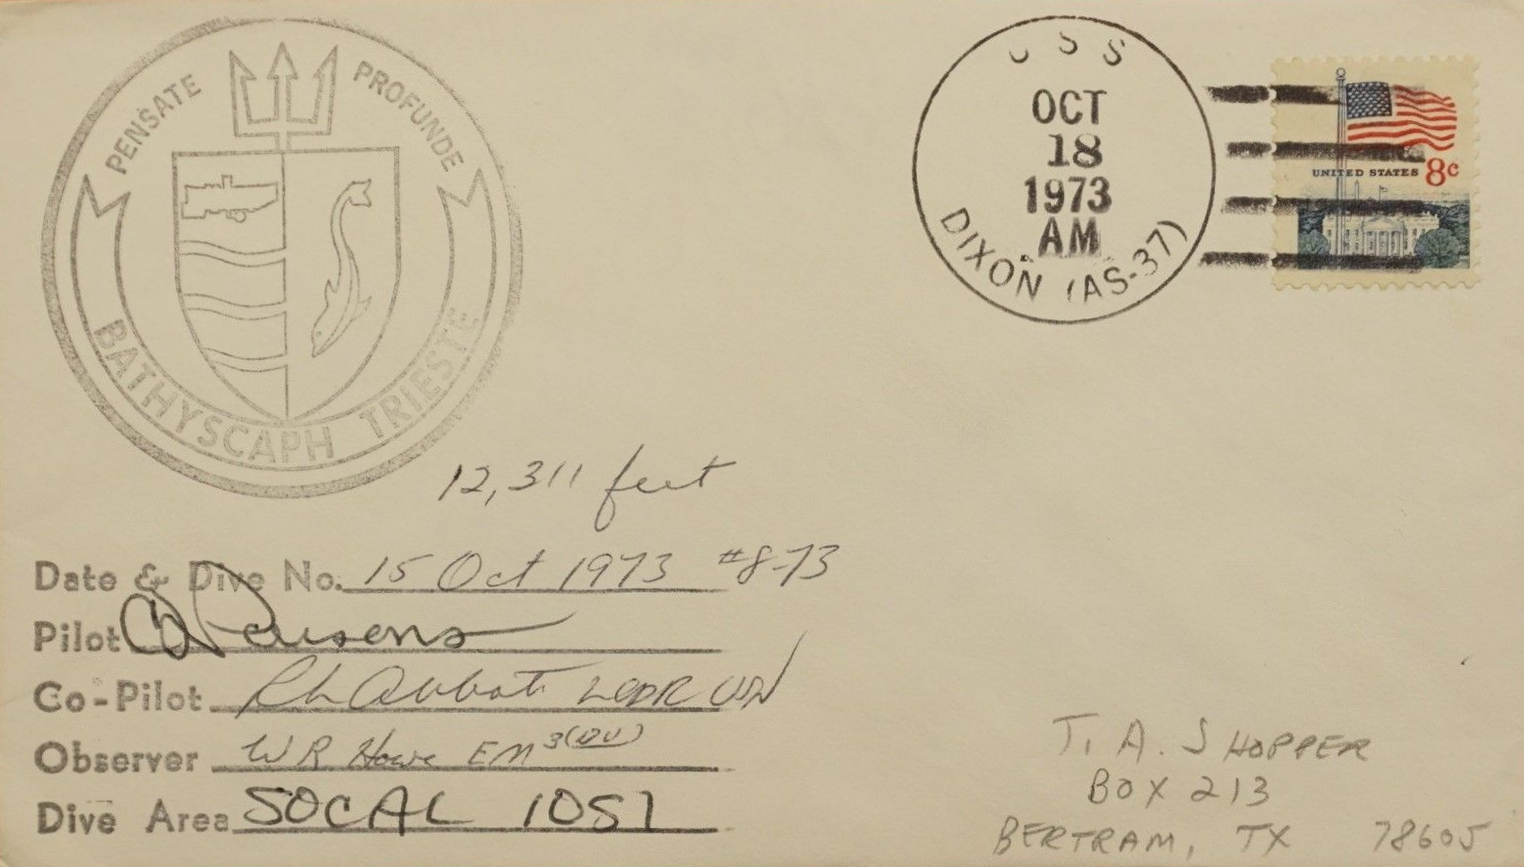 Cover from a 1973 dive off Southern California to a depth of 12,311 feet.